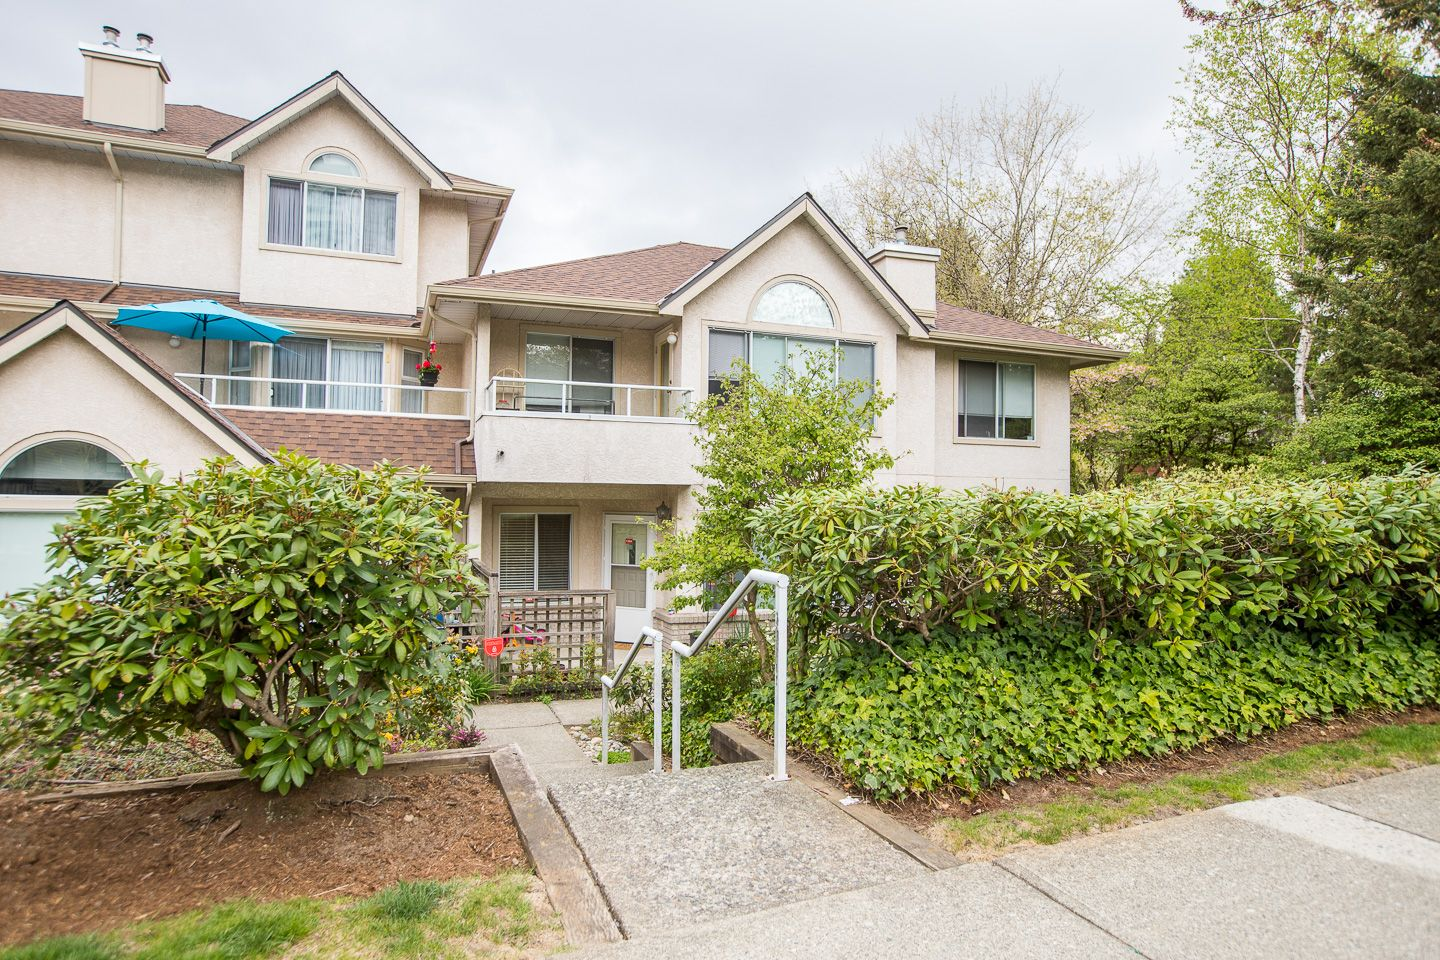 Photo 19: Photos: #8-3701 THURSTON ST in BURNABY: Central Park BS Condo for sale (Burnaby South)  : MLS®# R2572861